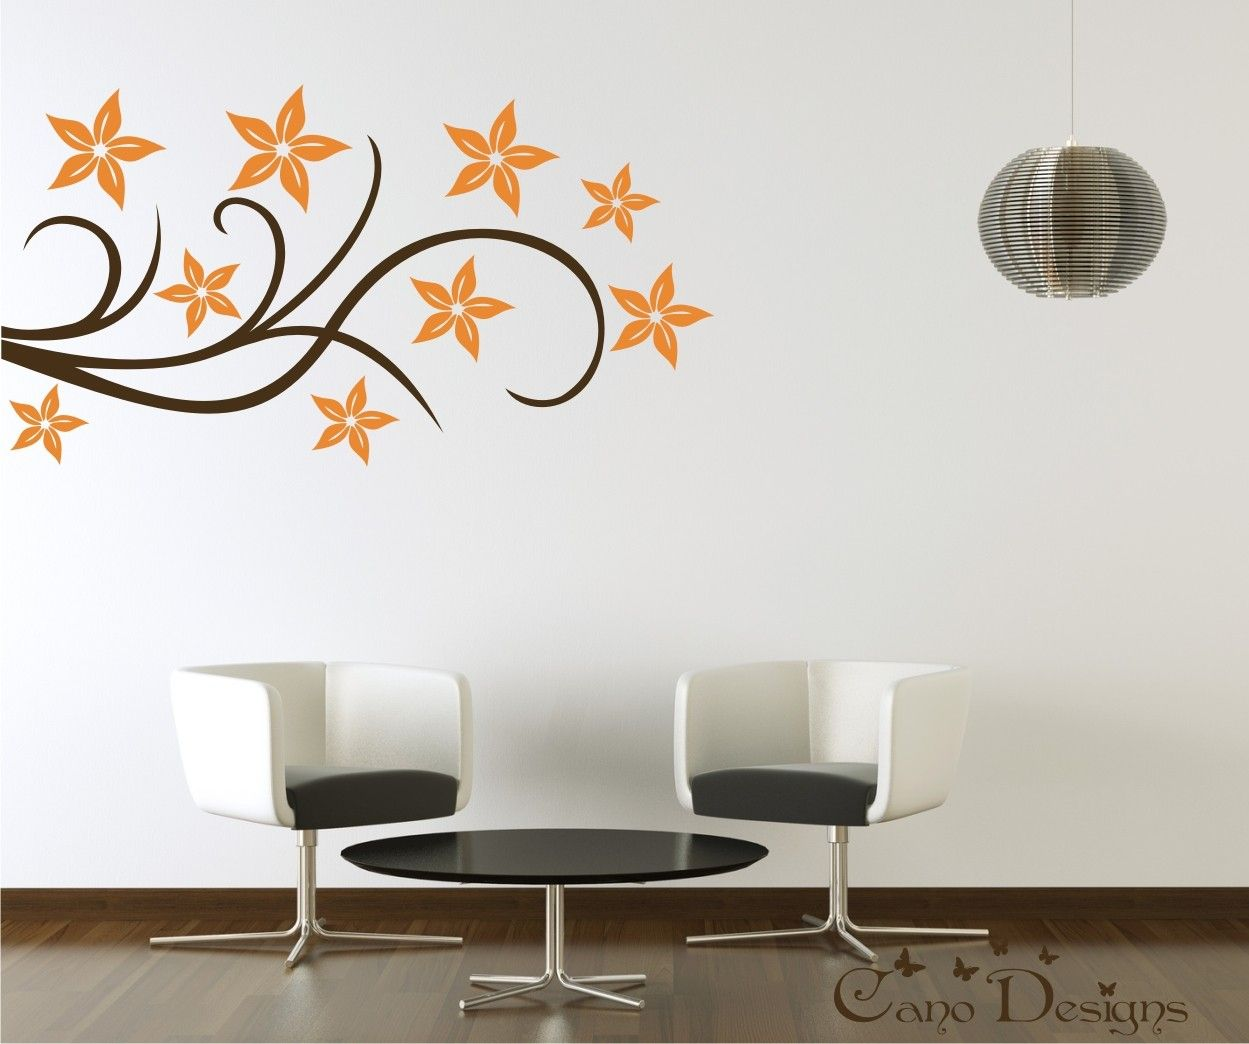 Stylish Modern Wall Decor Stickers Art Decals